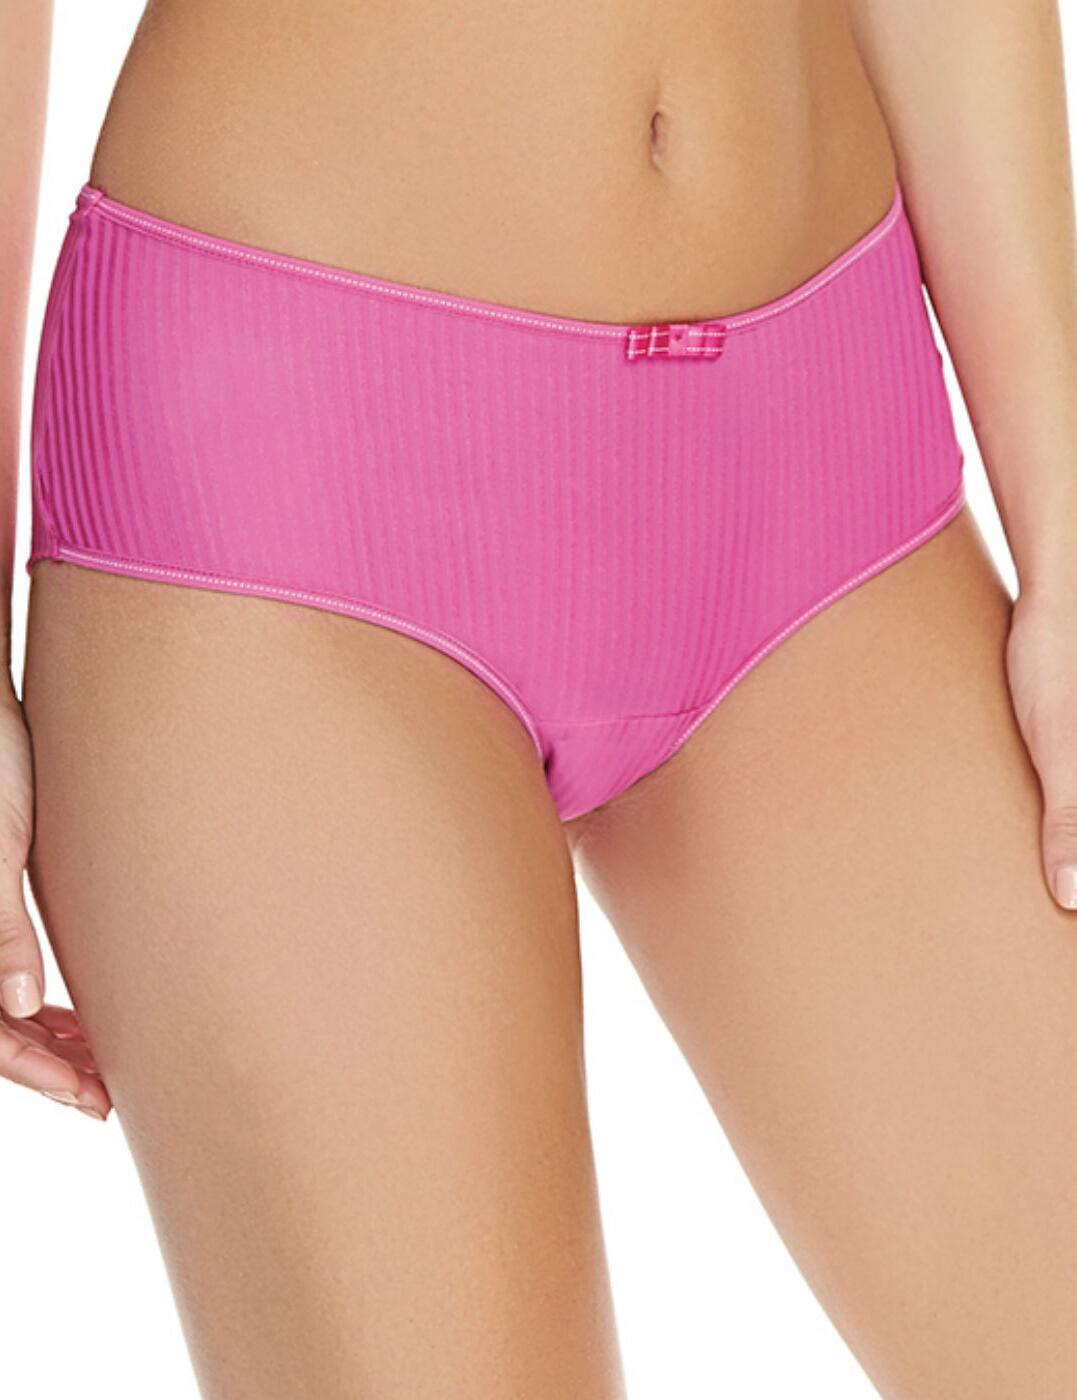 1056 Freya Idol Hipster Short Brief - 1056 Pink Flambe